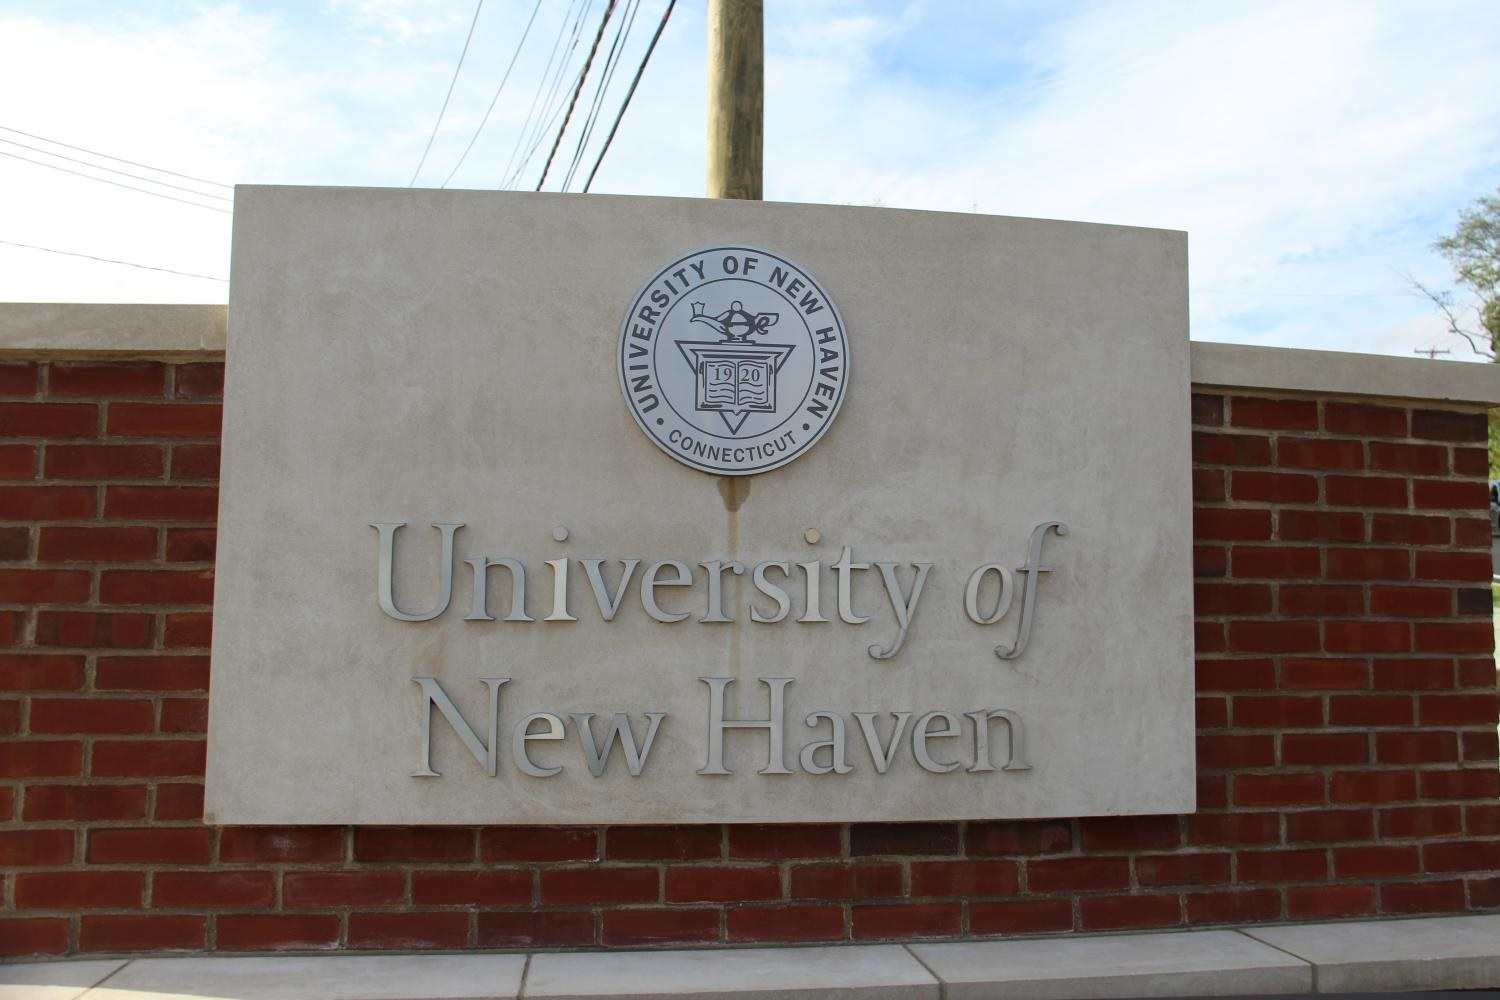 Top 10 Clubs and Events at the University of New Haven